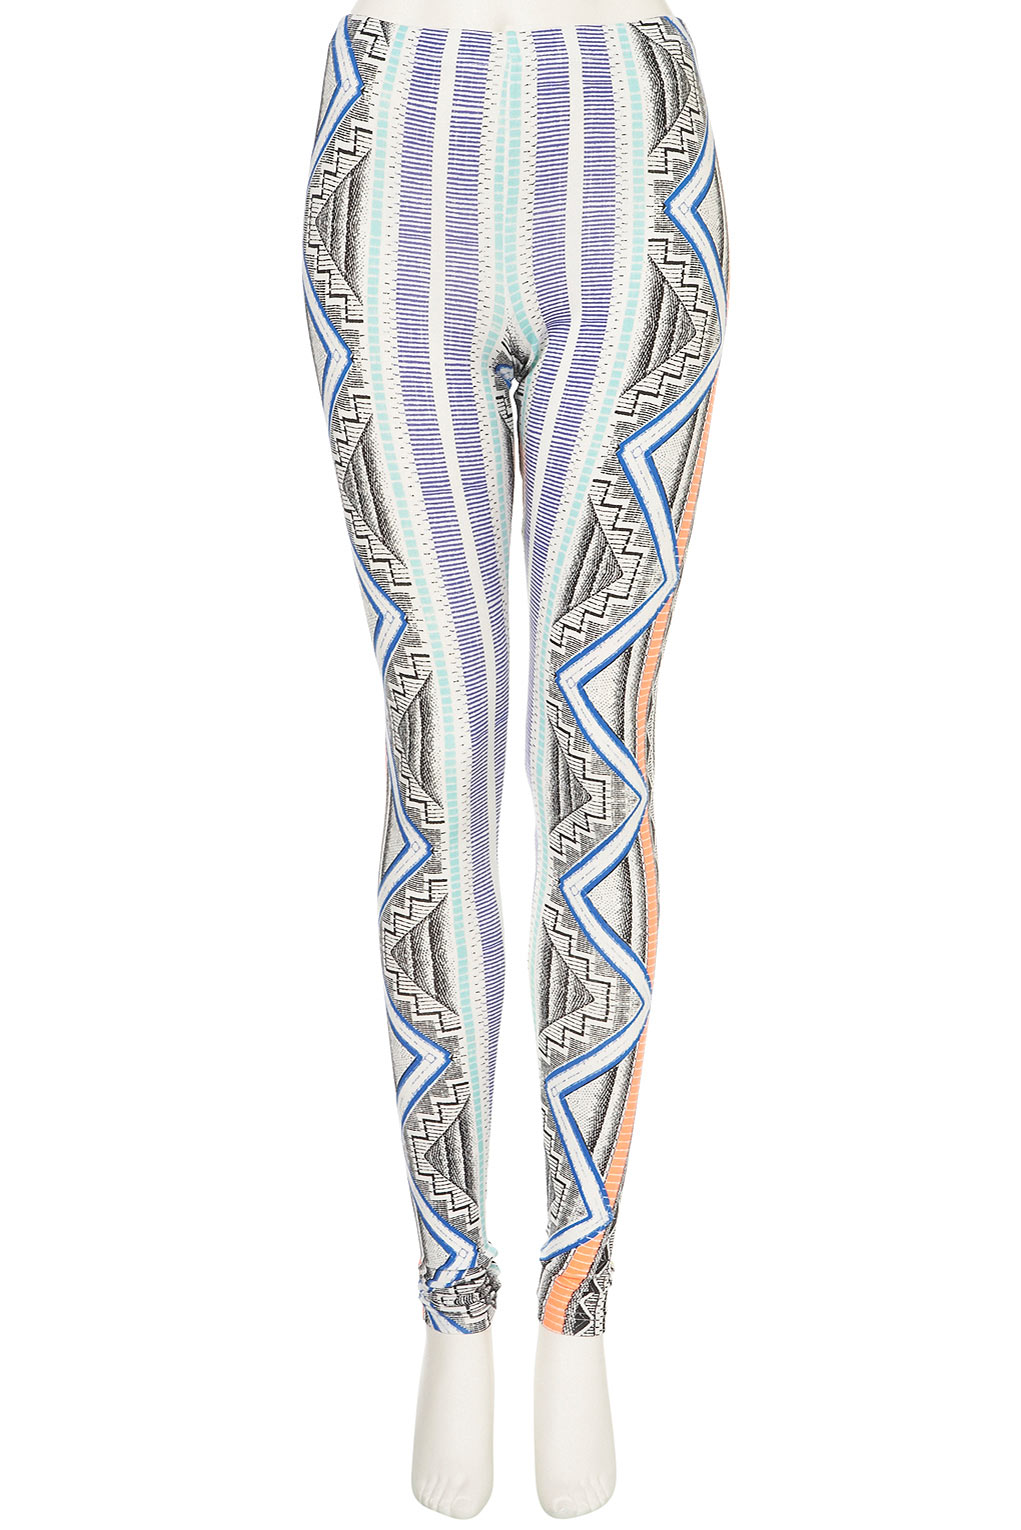 Pay tribute to the sun and the sea in style with Fin Fun's Aztec Sun leggings! Featuring unique, under-the-sea patterns in a rainbow ombre design, you're sure to make your own sunshine wherever you choose to roam in these super-soft yoga pants.